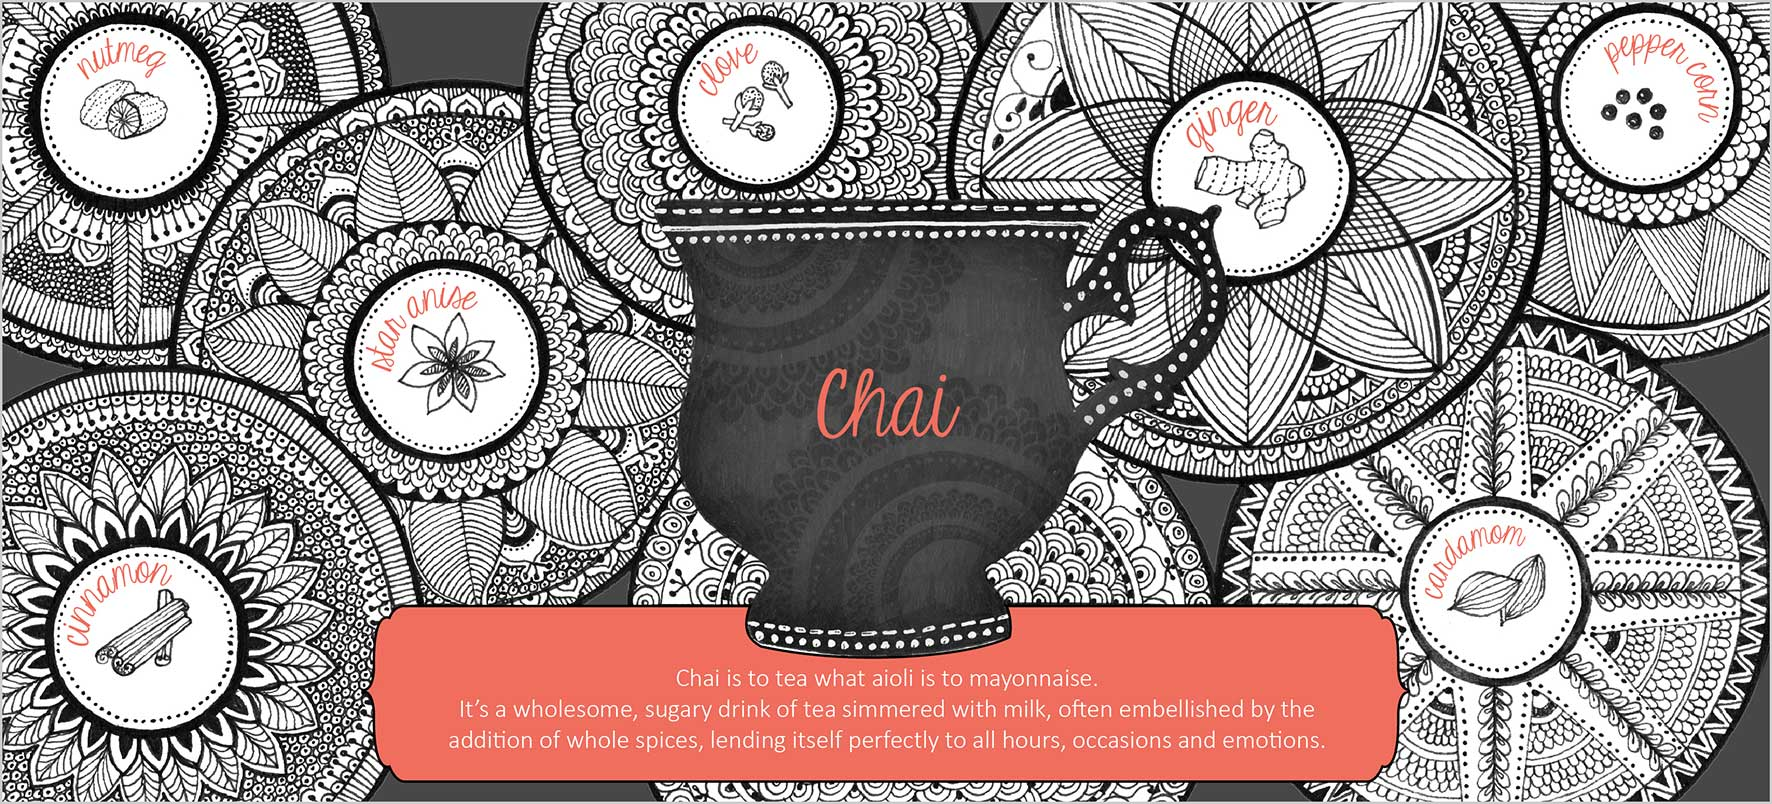 A post on chai, an Indian specialty